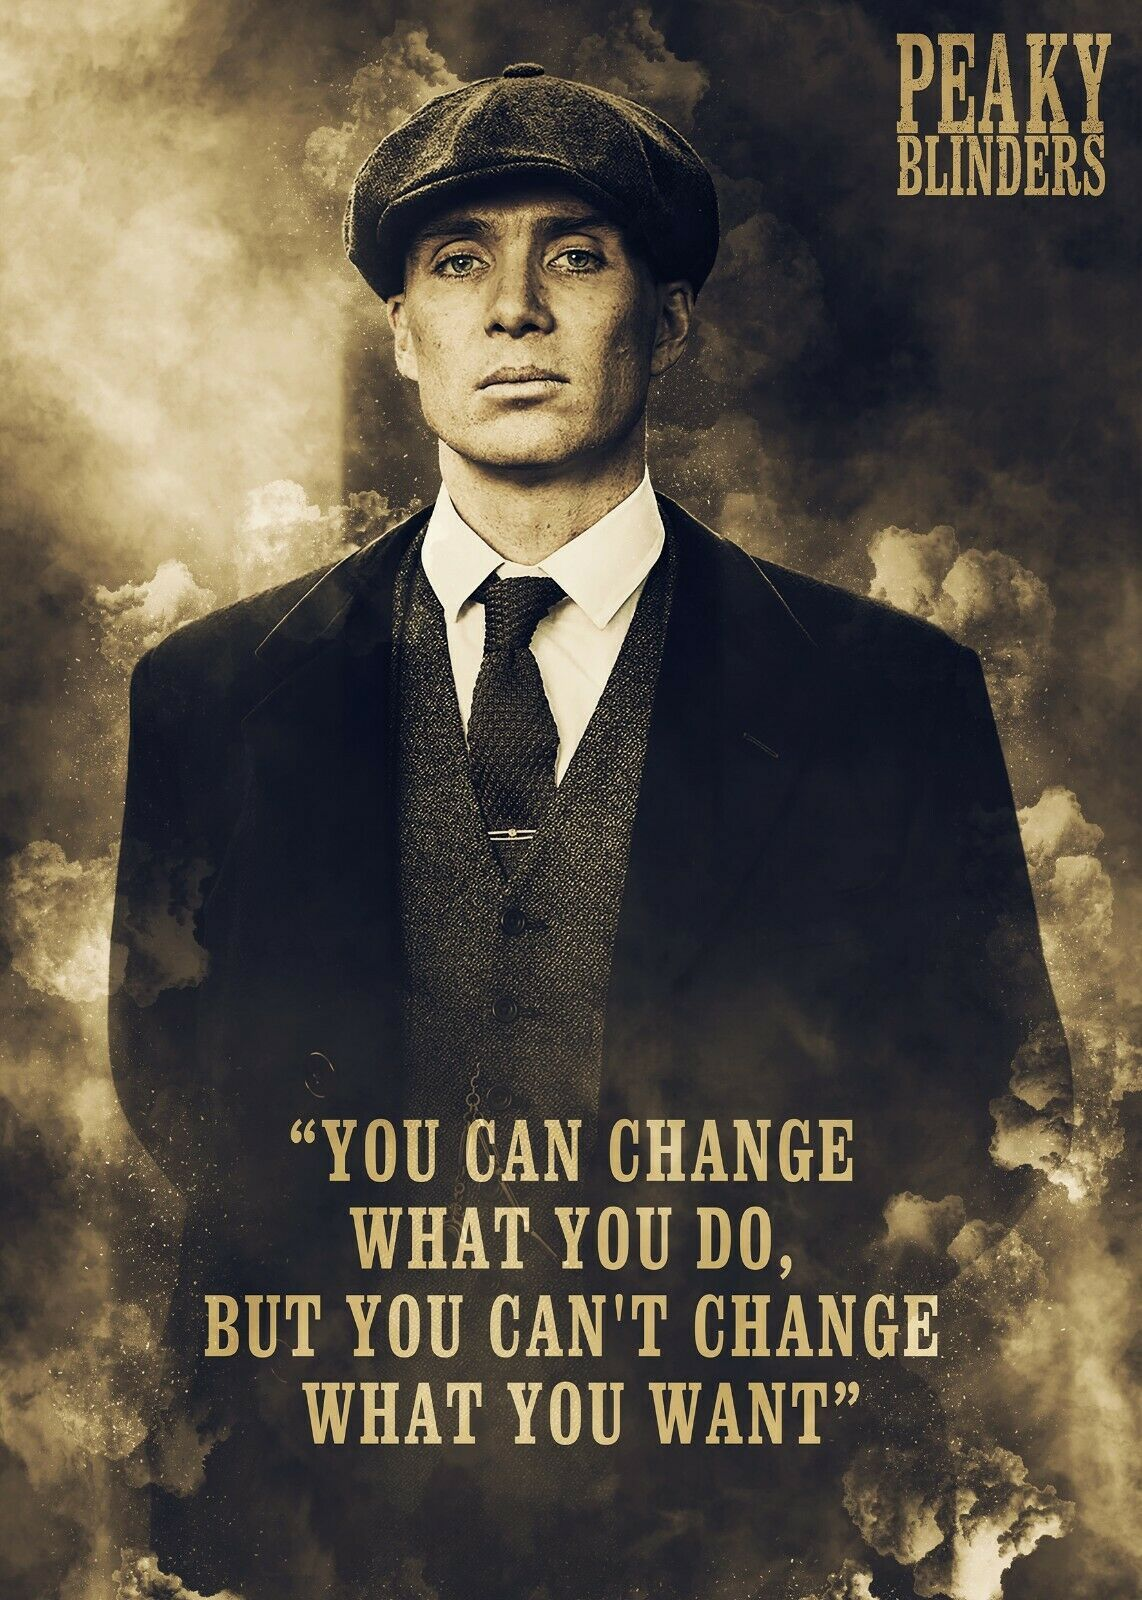 Details about Peaky Blinder, TV Series, Thomas Shelby